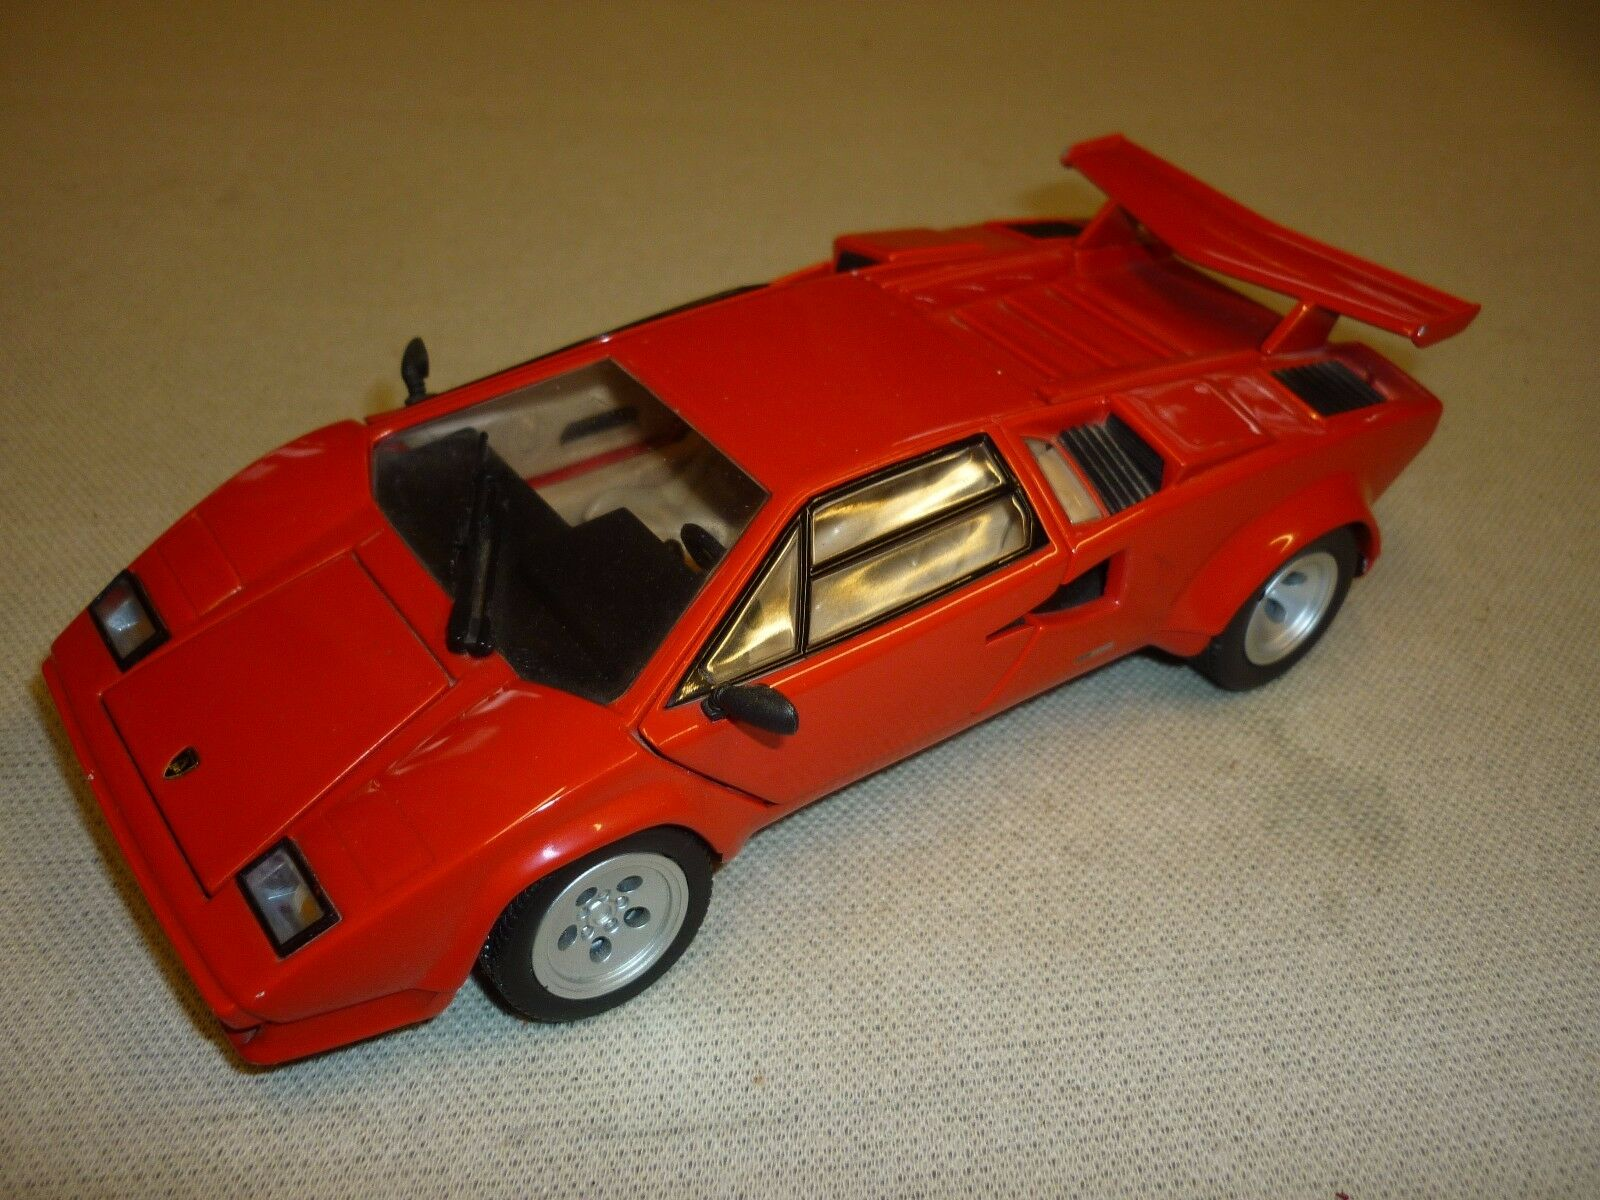 Un Franklin Comme neuf scale model voiture 1985 Lamborghini Countach 500 S | Magasiner